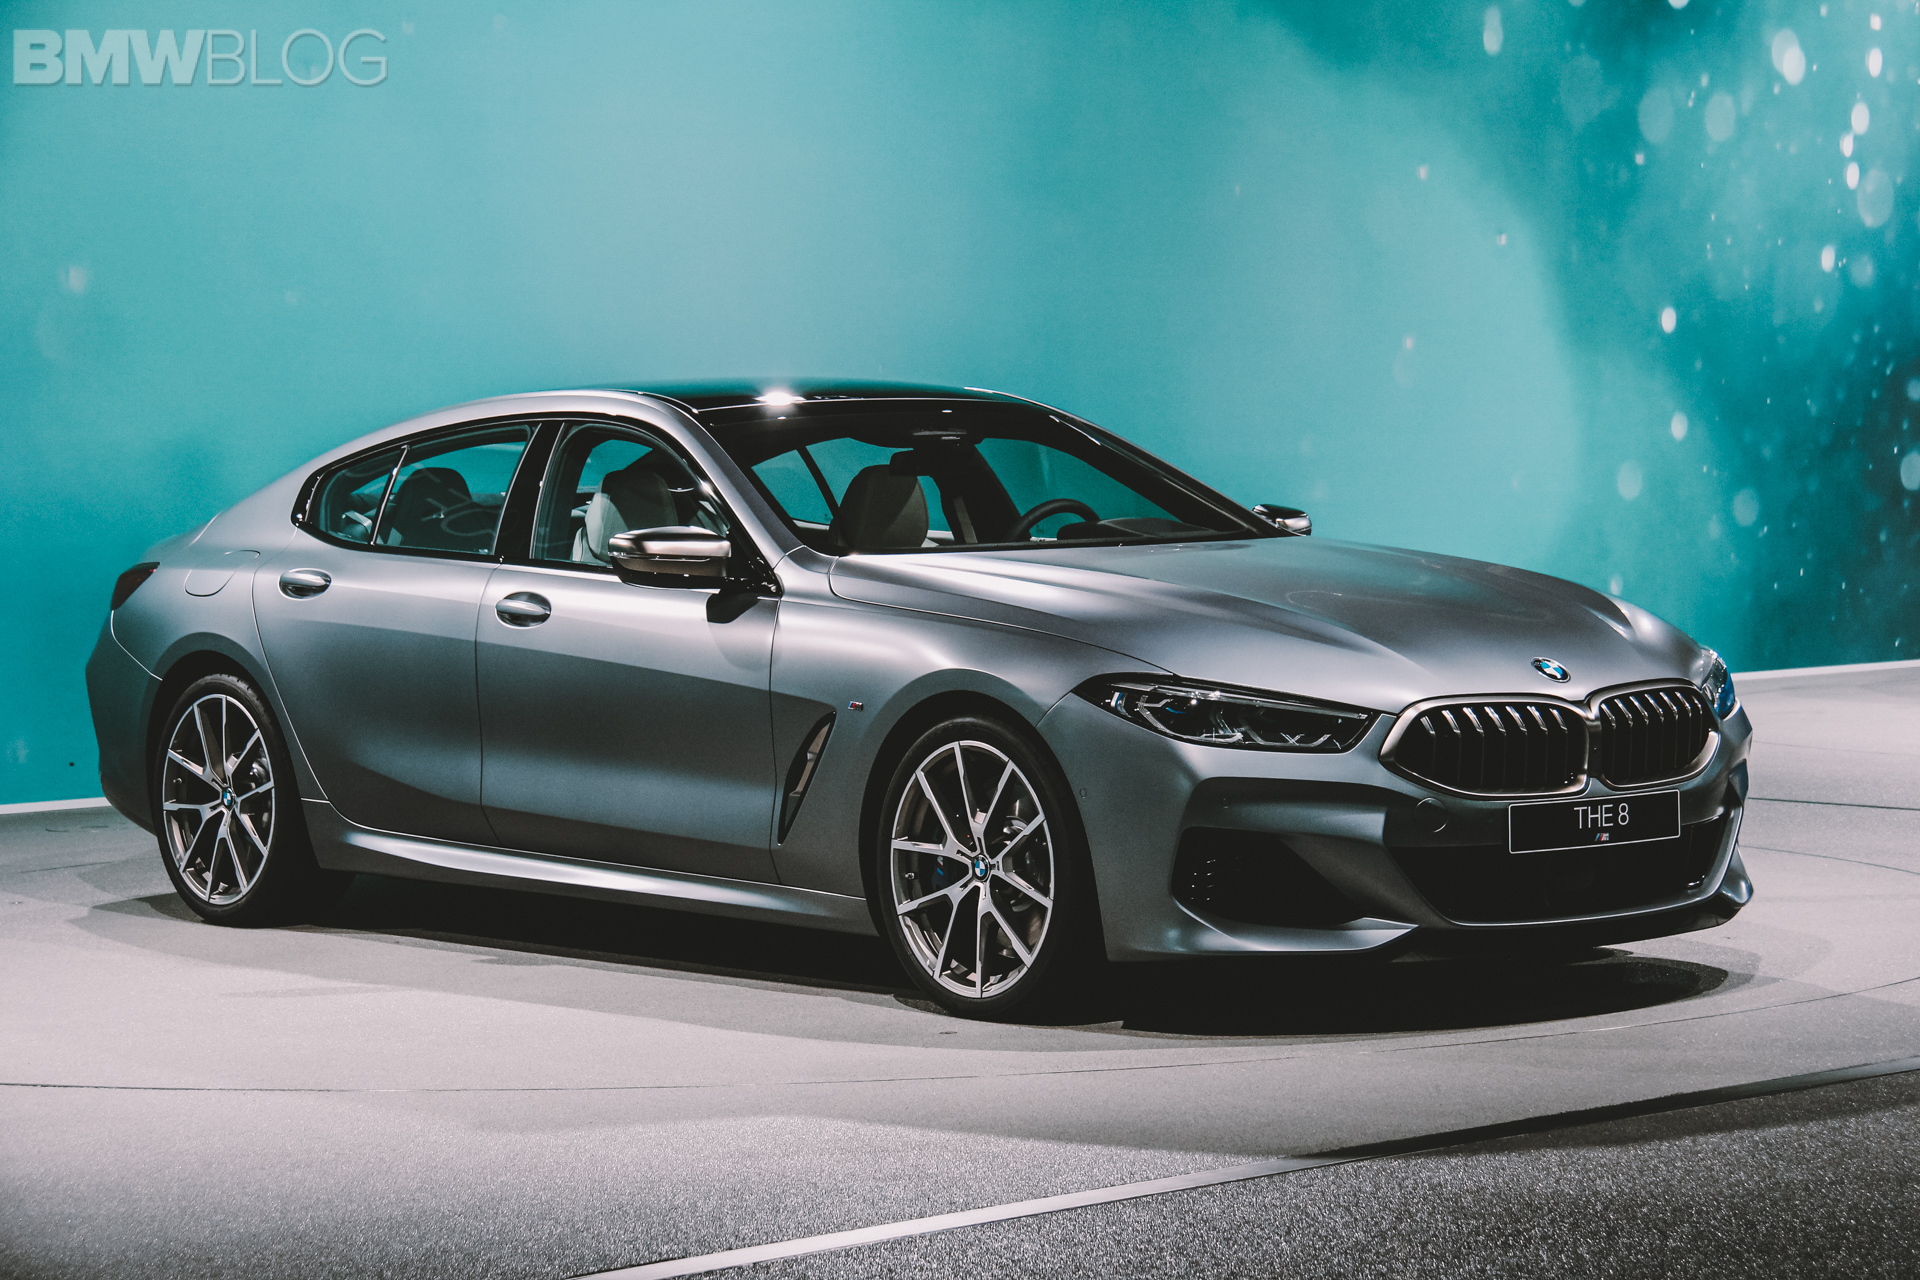 First live photos of the BMW 8 Series Gran Coupe